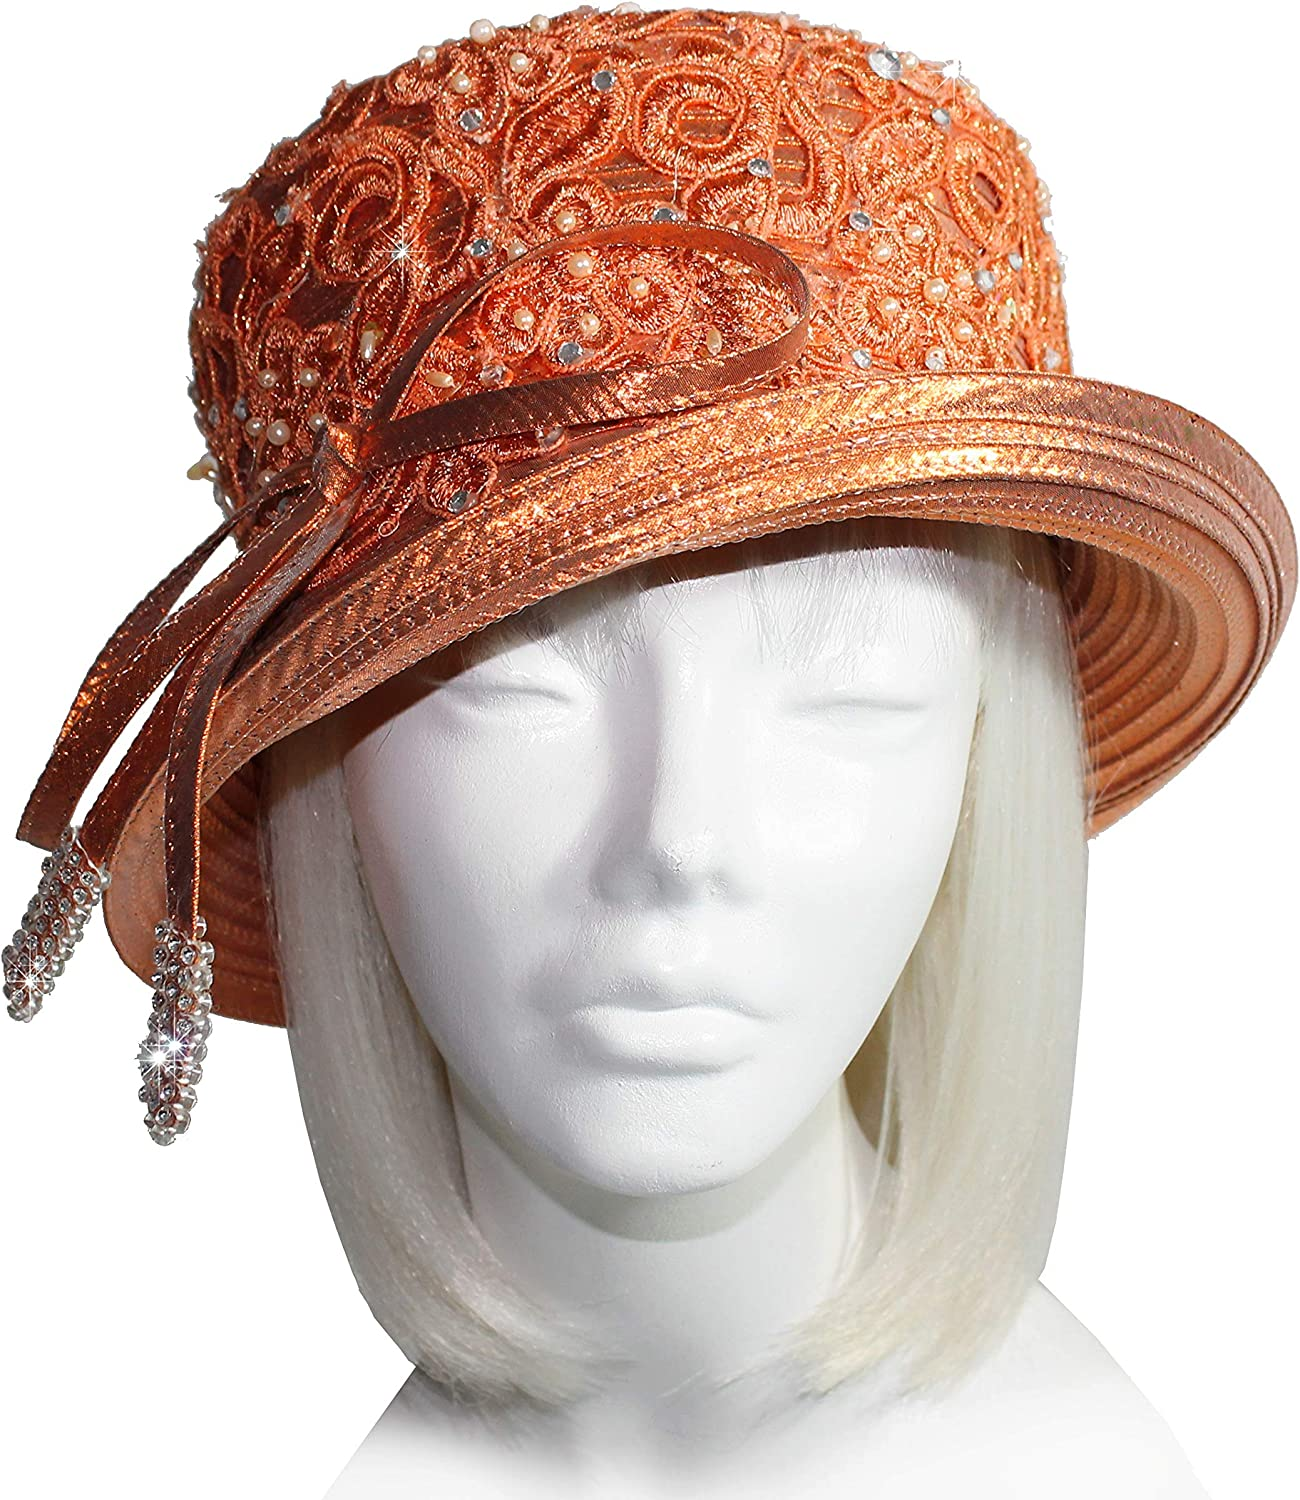 Mr. Song Millinery Medium Brim Hat with Rhinestone shoesrstring Knot & Lace  Shimmery orange Q334